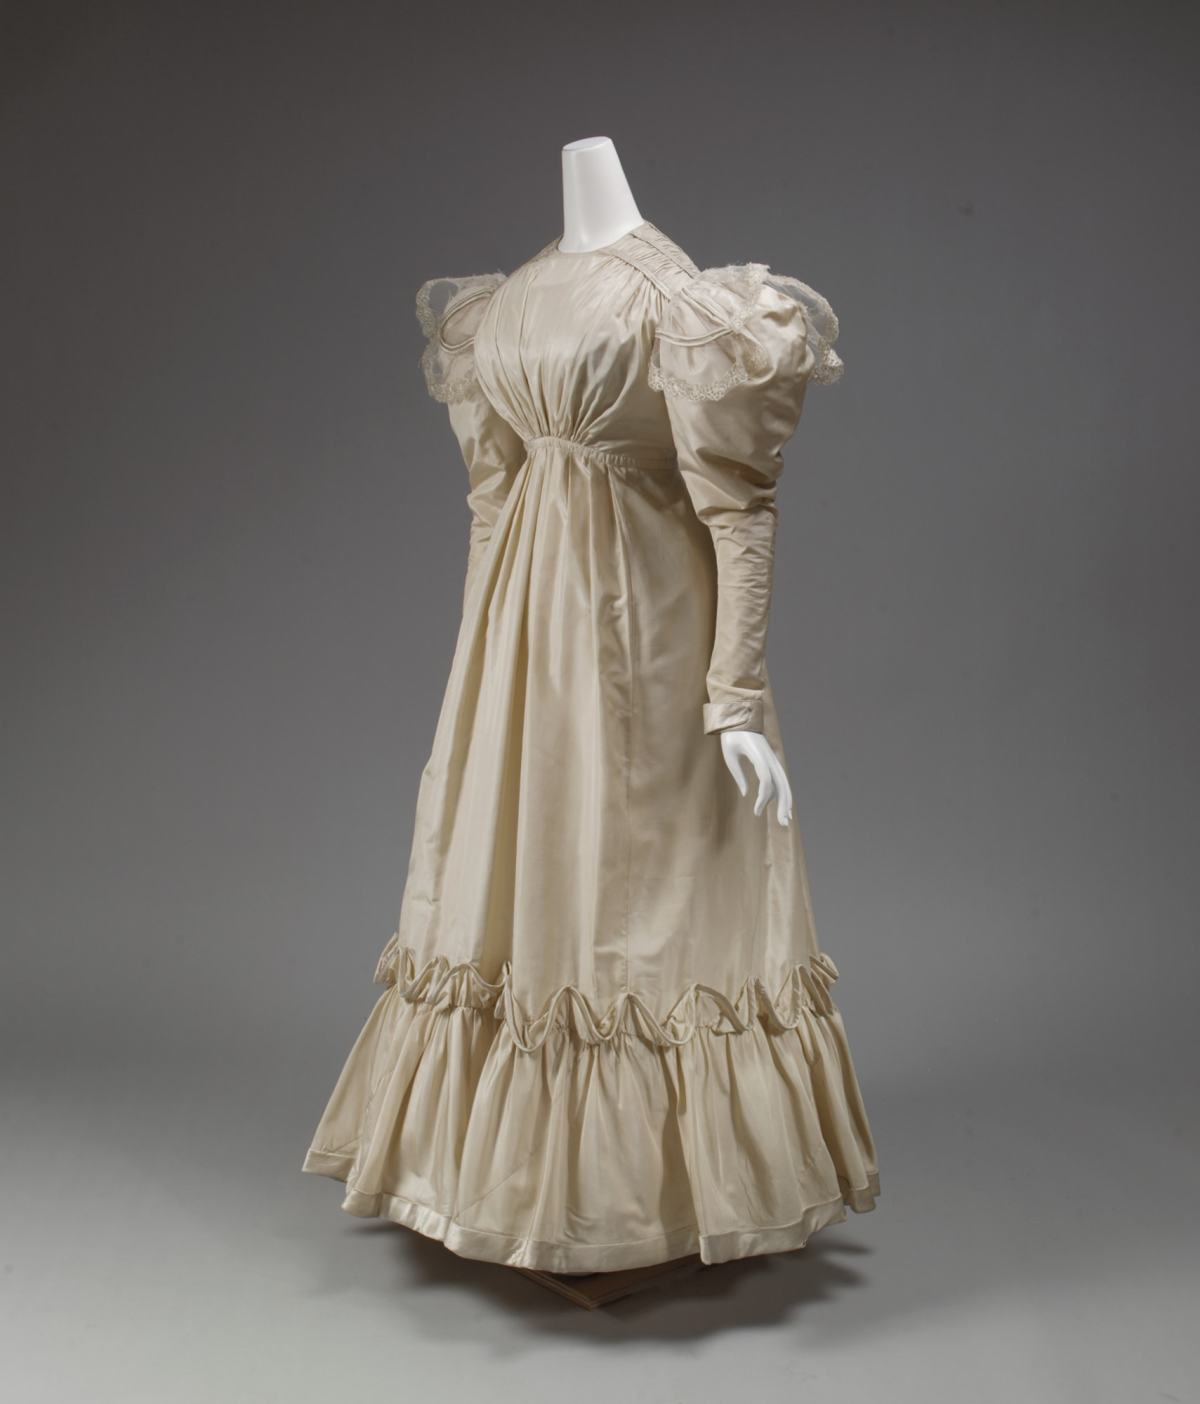 British white dress with puff sleeves, elevated waist 1826-29